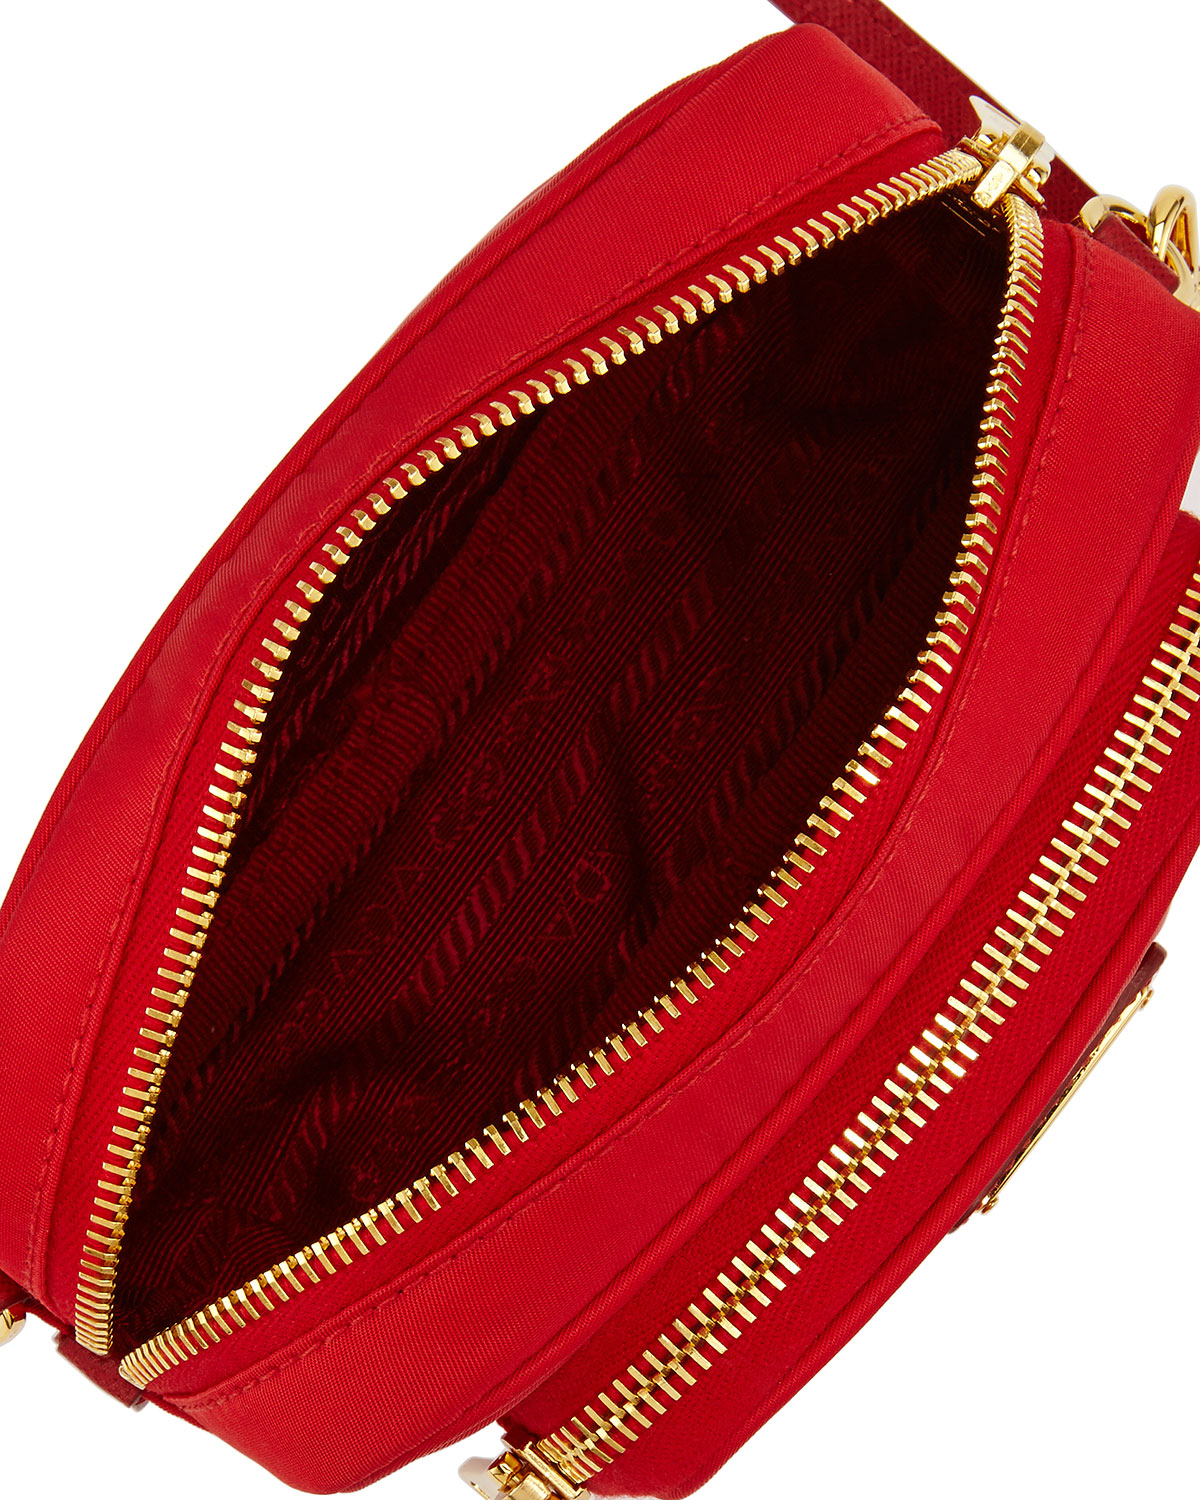 black prada tote - Prada Tessuto Small Pocket Crossbody Bag in Red | Lyst